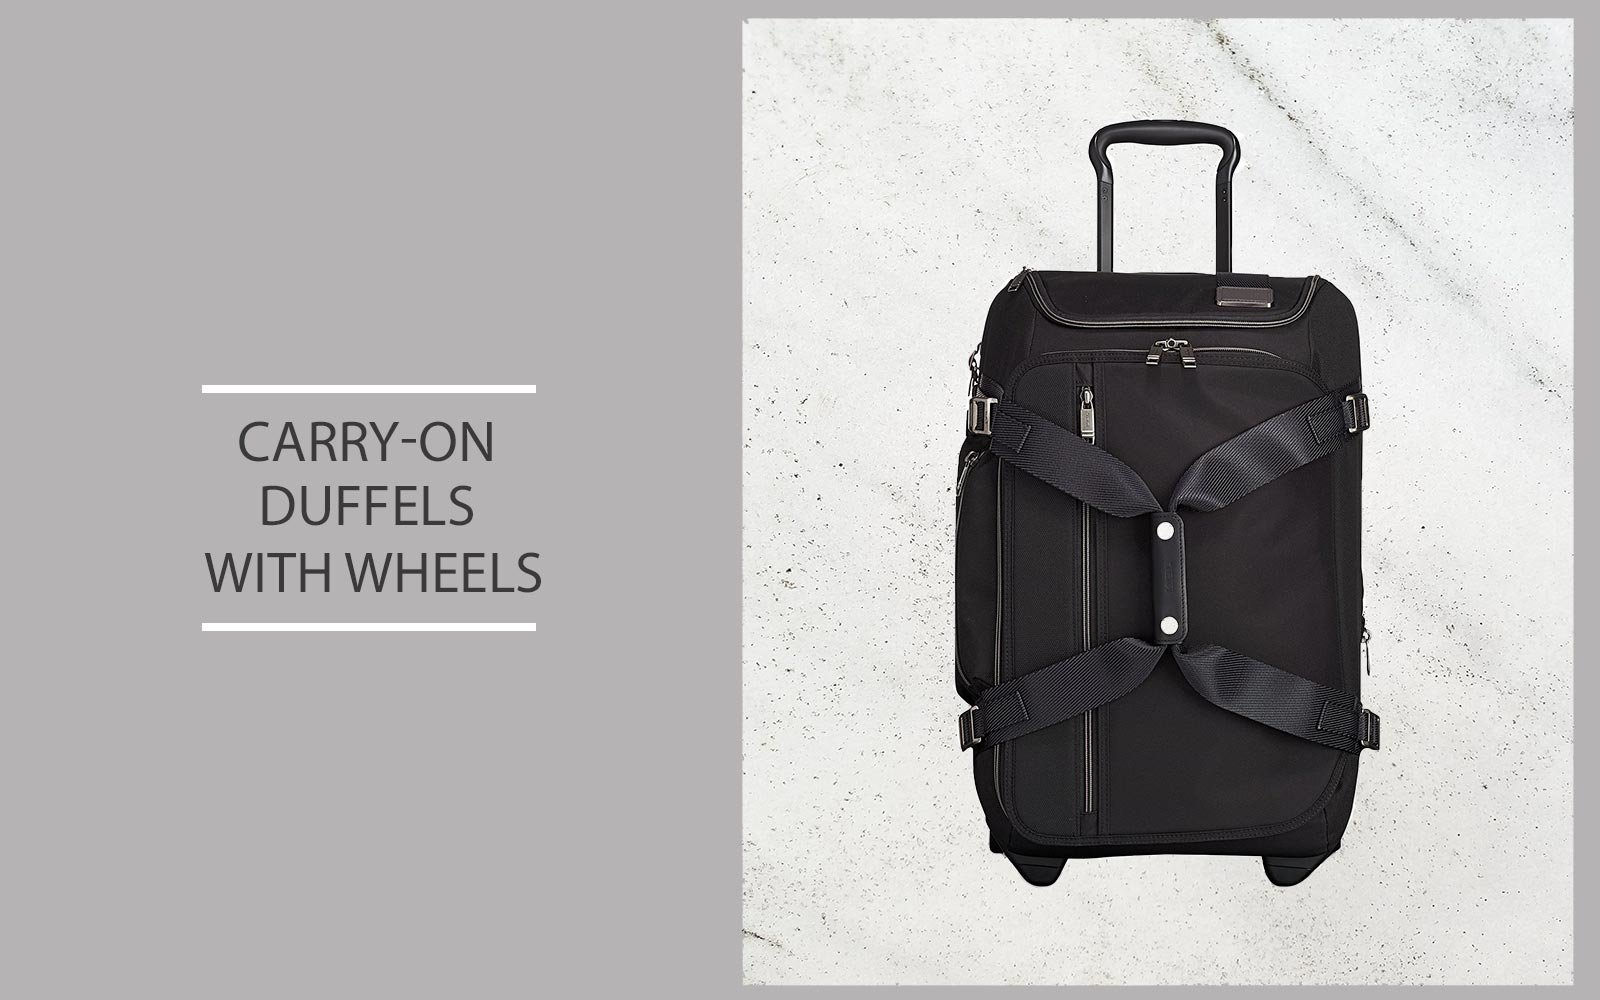 Carry-on Duffel Bags With Wheels